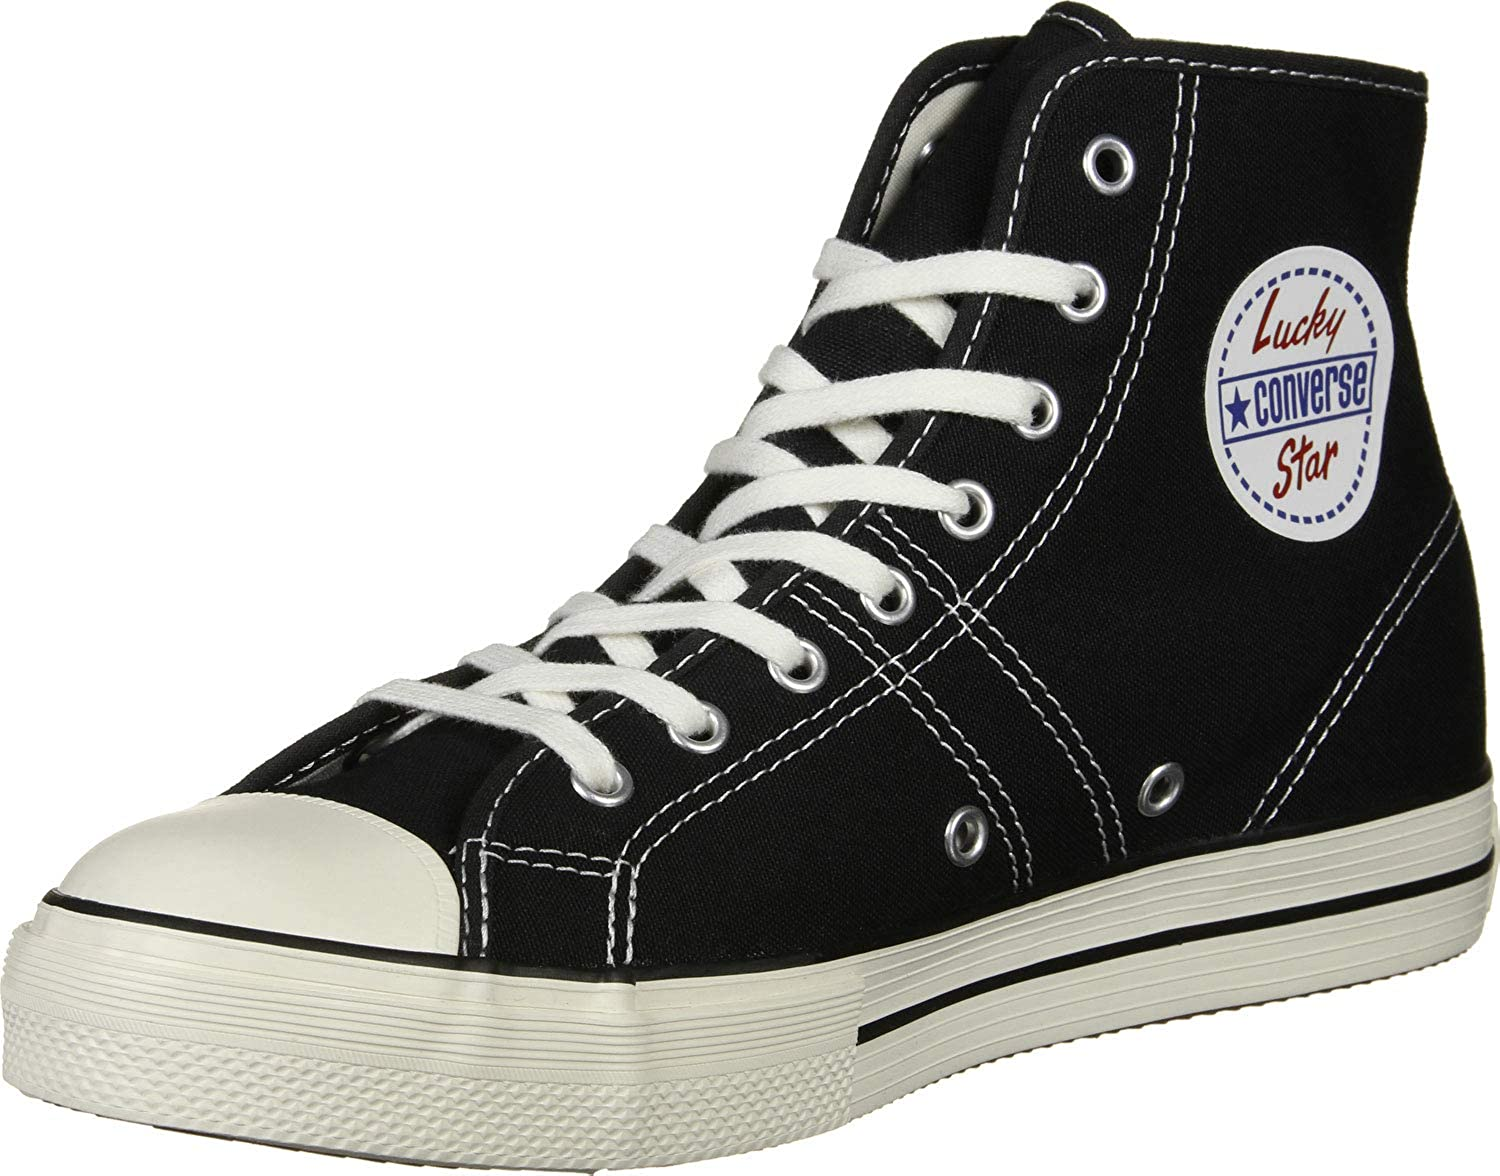 | Converse Shoes for Men high Sneakers 163321C